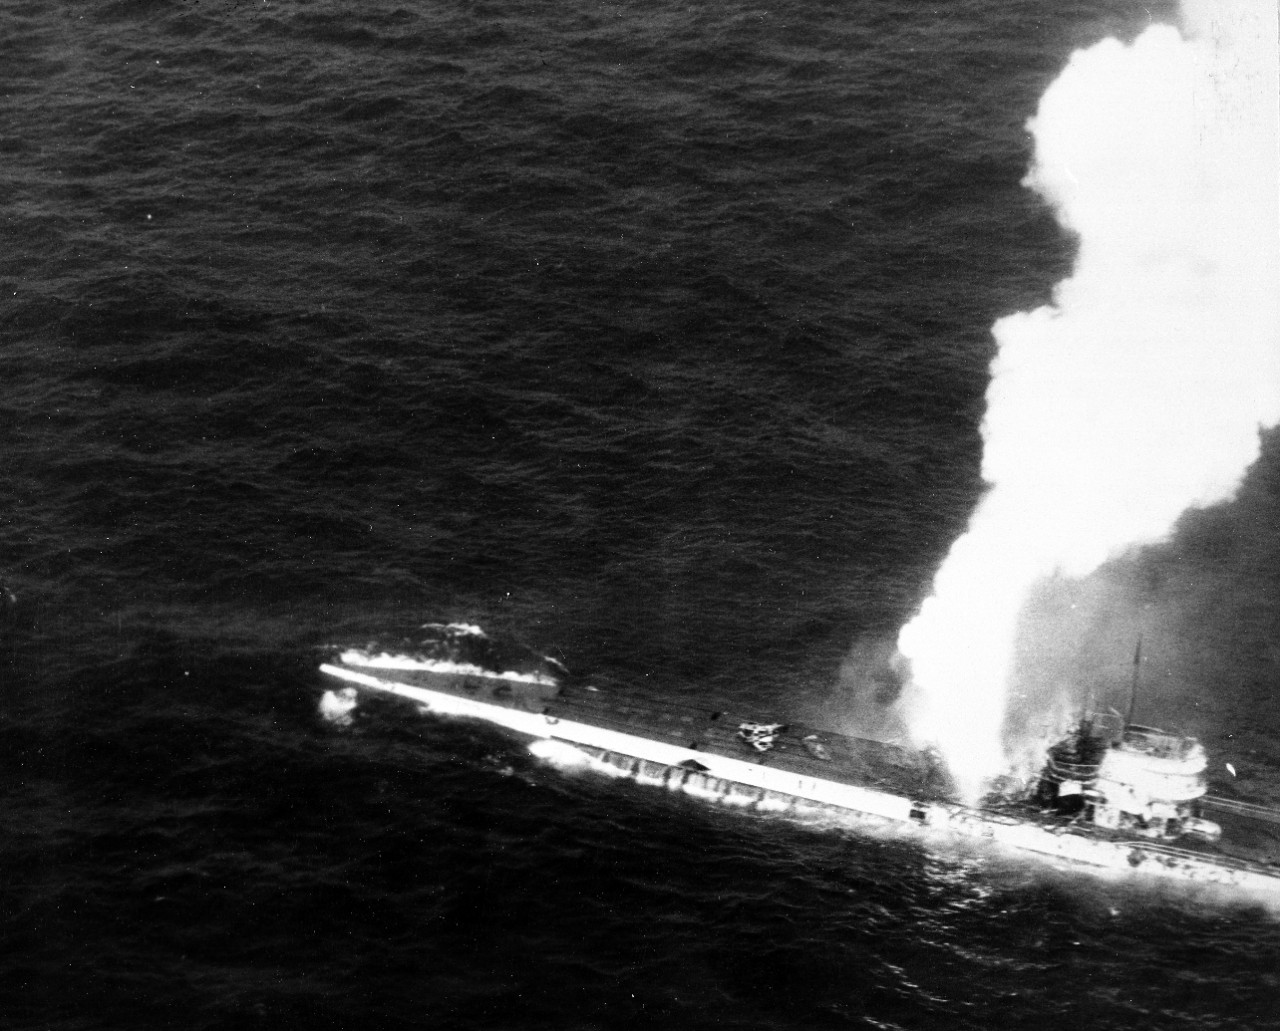 A plane flying from Guadalcanal snaps a picture of U-515 as the submarine burns and sinks, 9 April 1944. The explosion appears to be erupting from the boat's aft antiaircraft gun battery. (U.S. Navy Photograph 80-G-227197, National Archives and Records Administration, Still Pictures Division, College Park, Md.)